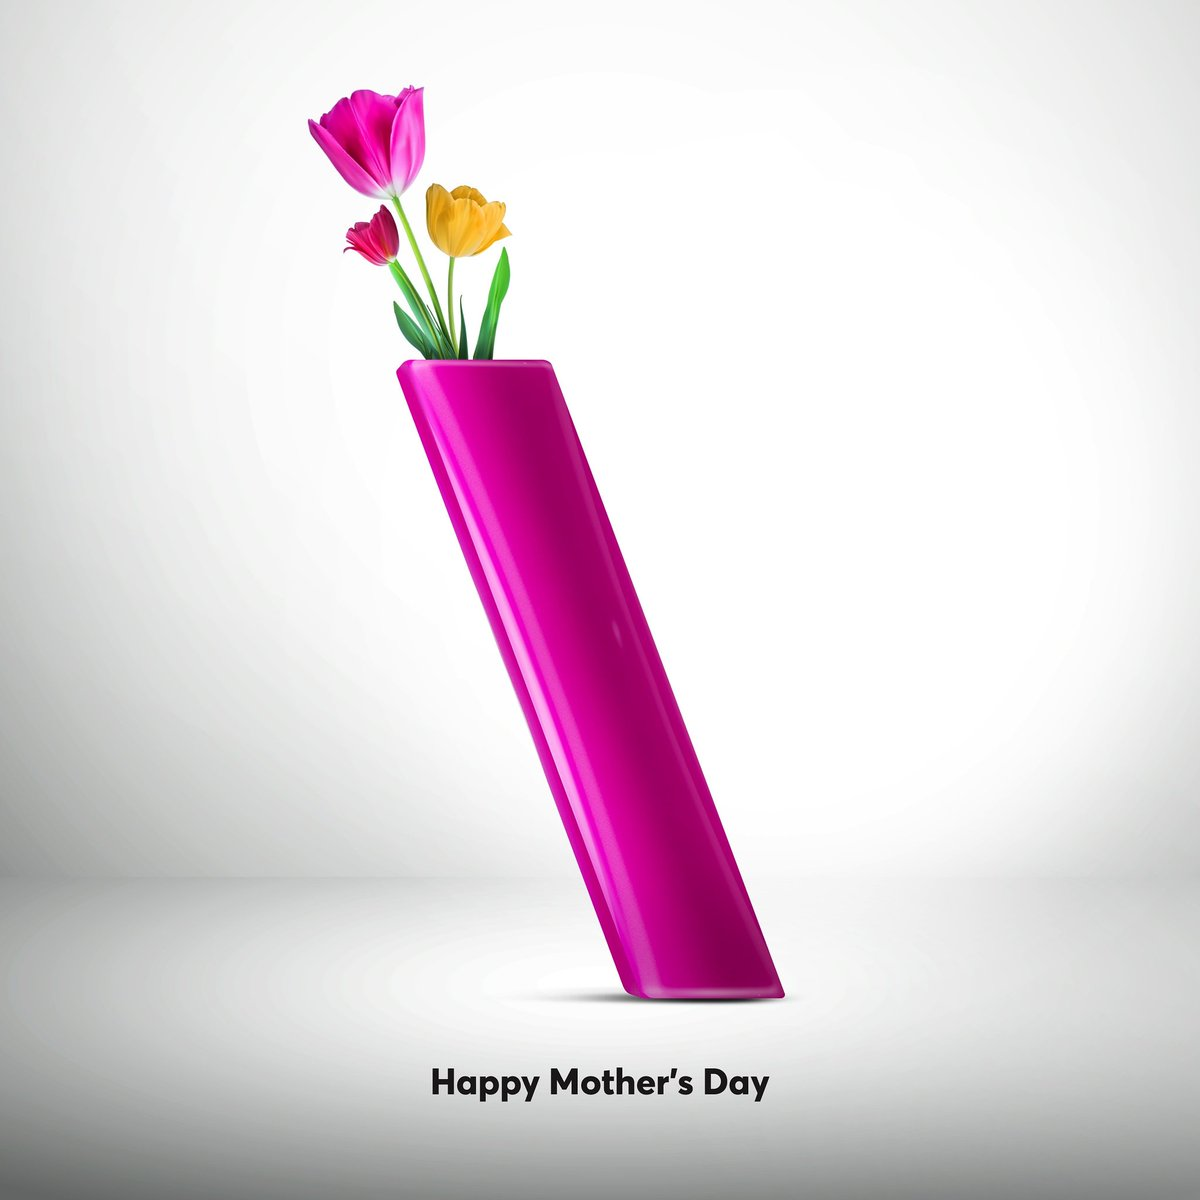 There's a reason some people think they can do anything... They listened to their mothers. ° Happy Mother's Day ° #tbwa #tbwakuwait #MothersDay #agency #advertising #marketing #socialmedia #creative #Kuwait https://t.co/JSSWVjwS2c